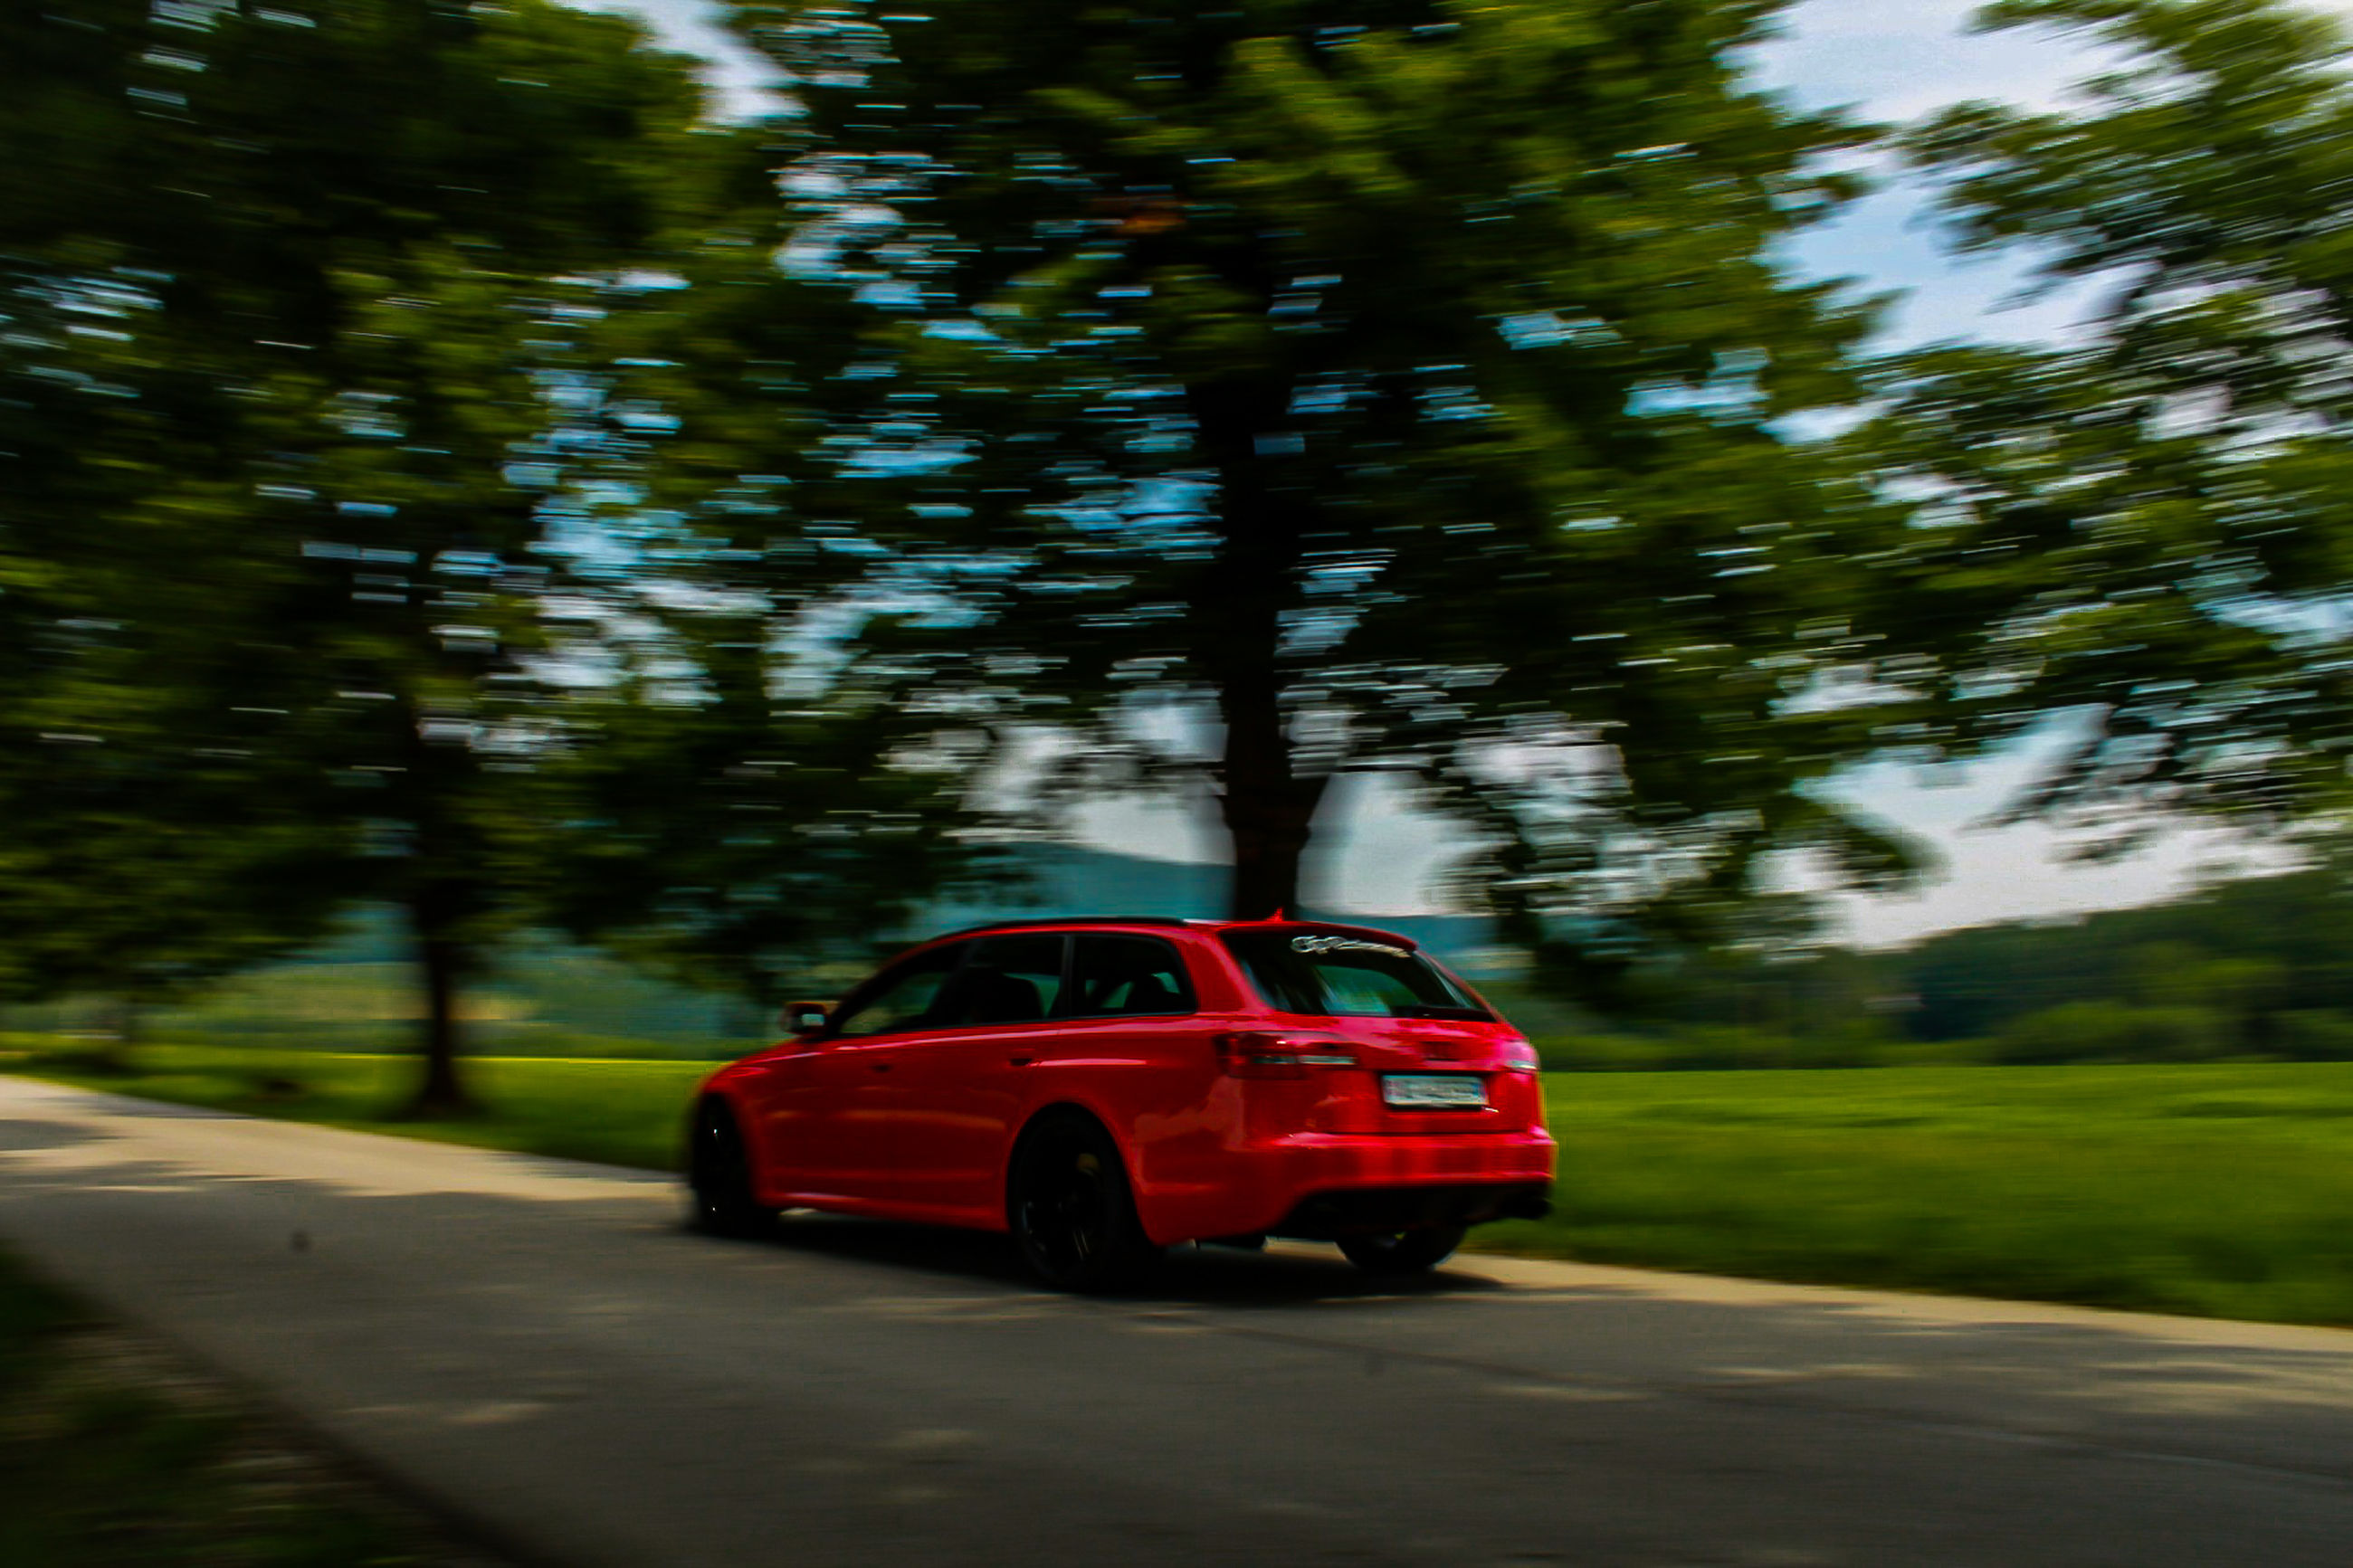 mode of transportation, transportation, car, motor vehicle, tree, land vehicle, red, blurred motion, plant, motion, nature, day, road, no people, green color, city, travel, outdoors, on the move, sunlight